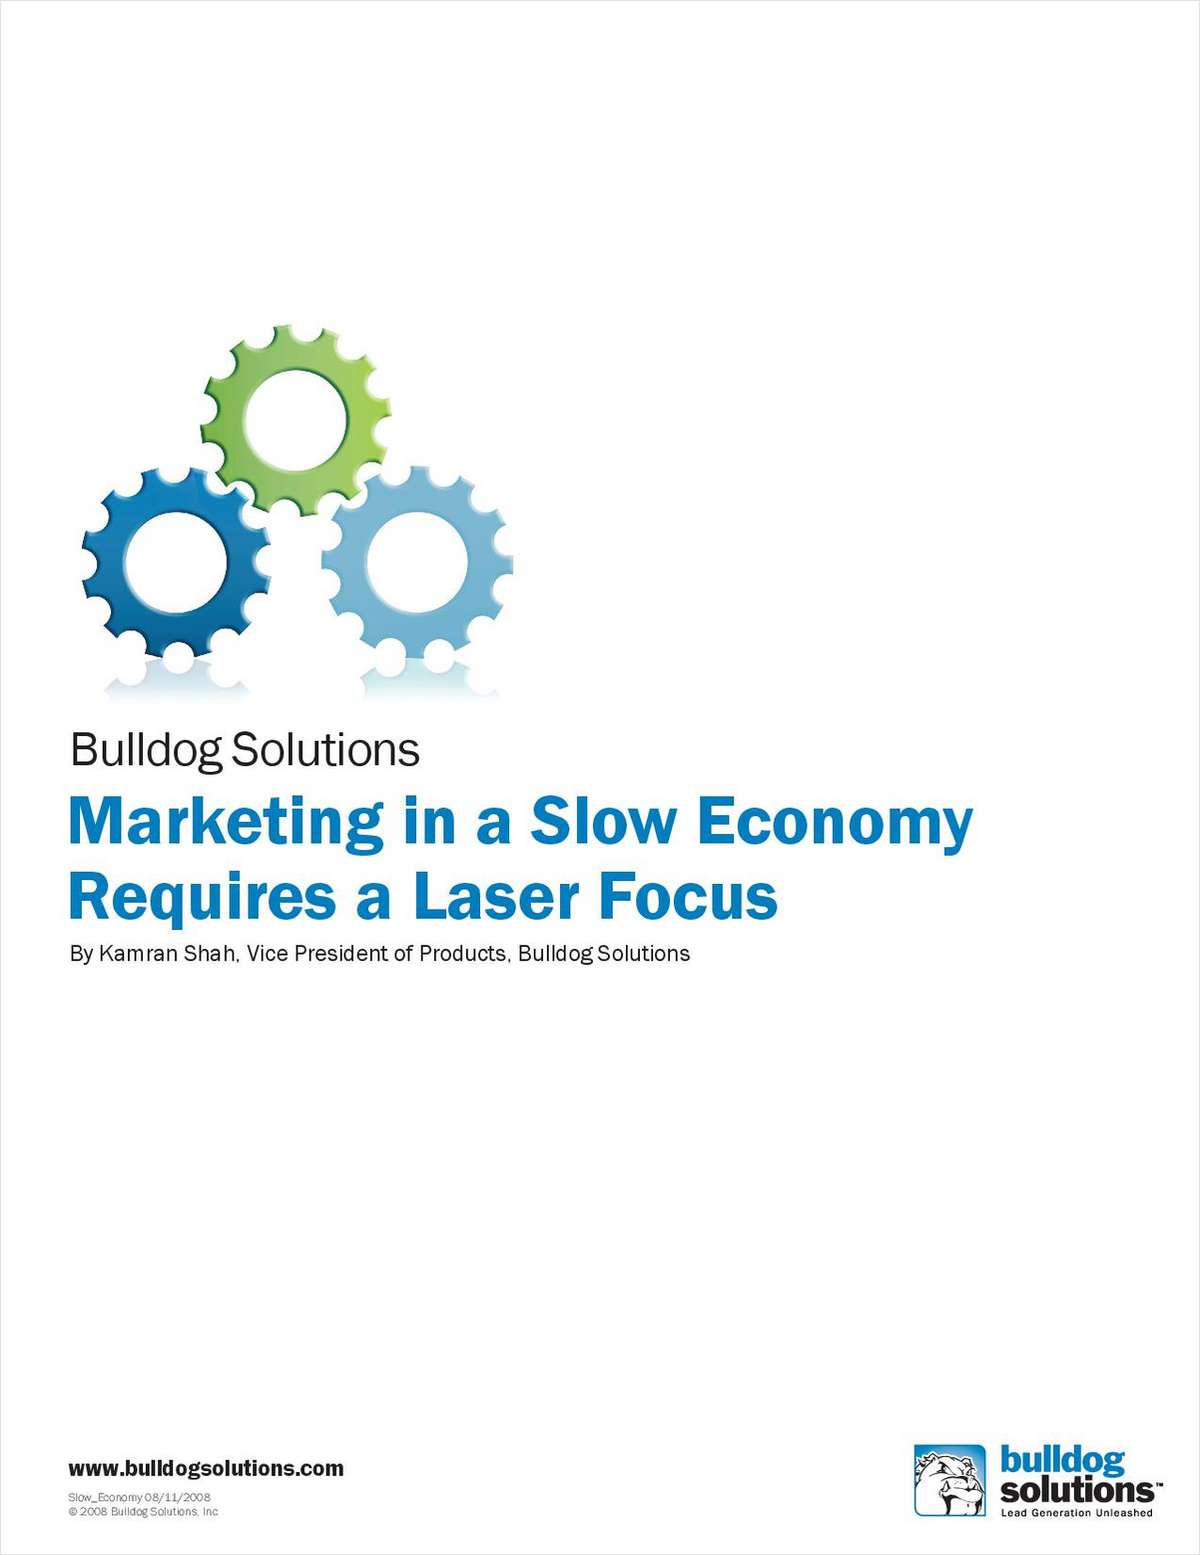 Marketing in a Slow Economy Requires a Laser Focus